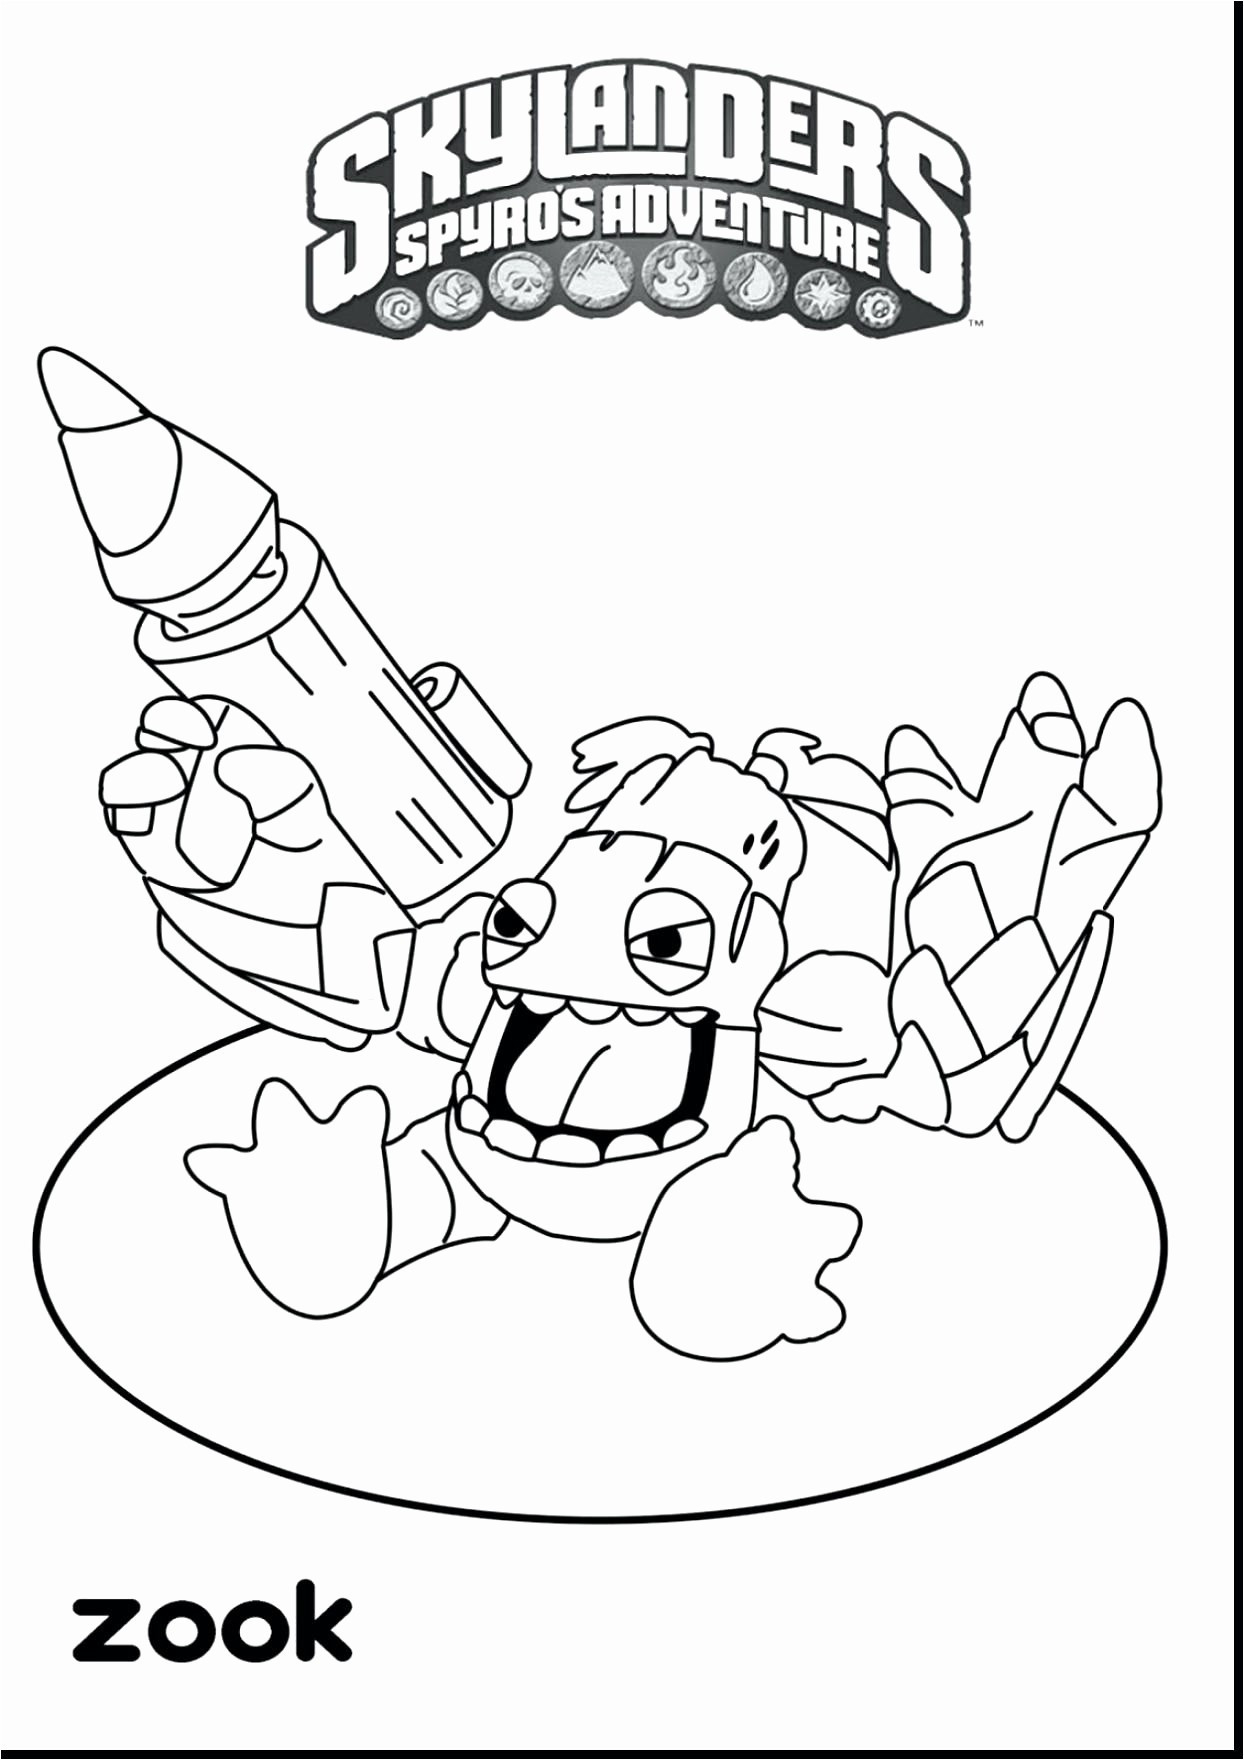 Personalized Happy Birthday Coloring Pages  to Print 1n - Free Download